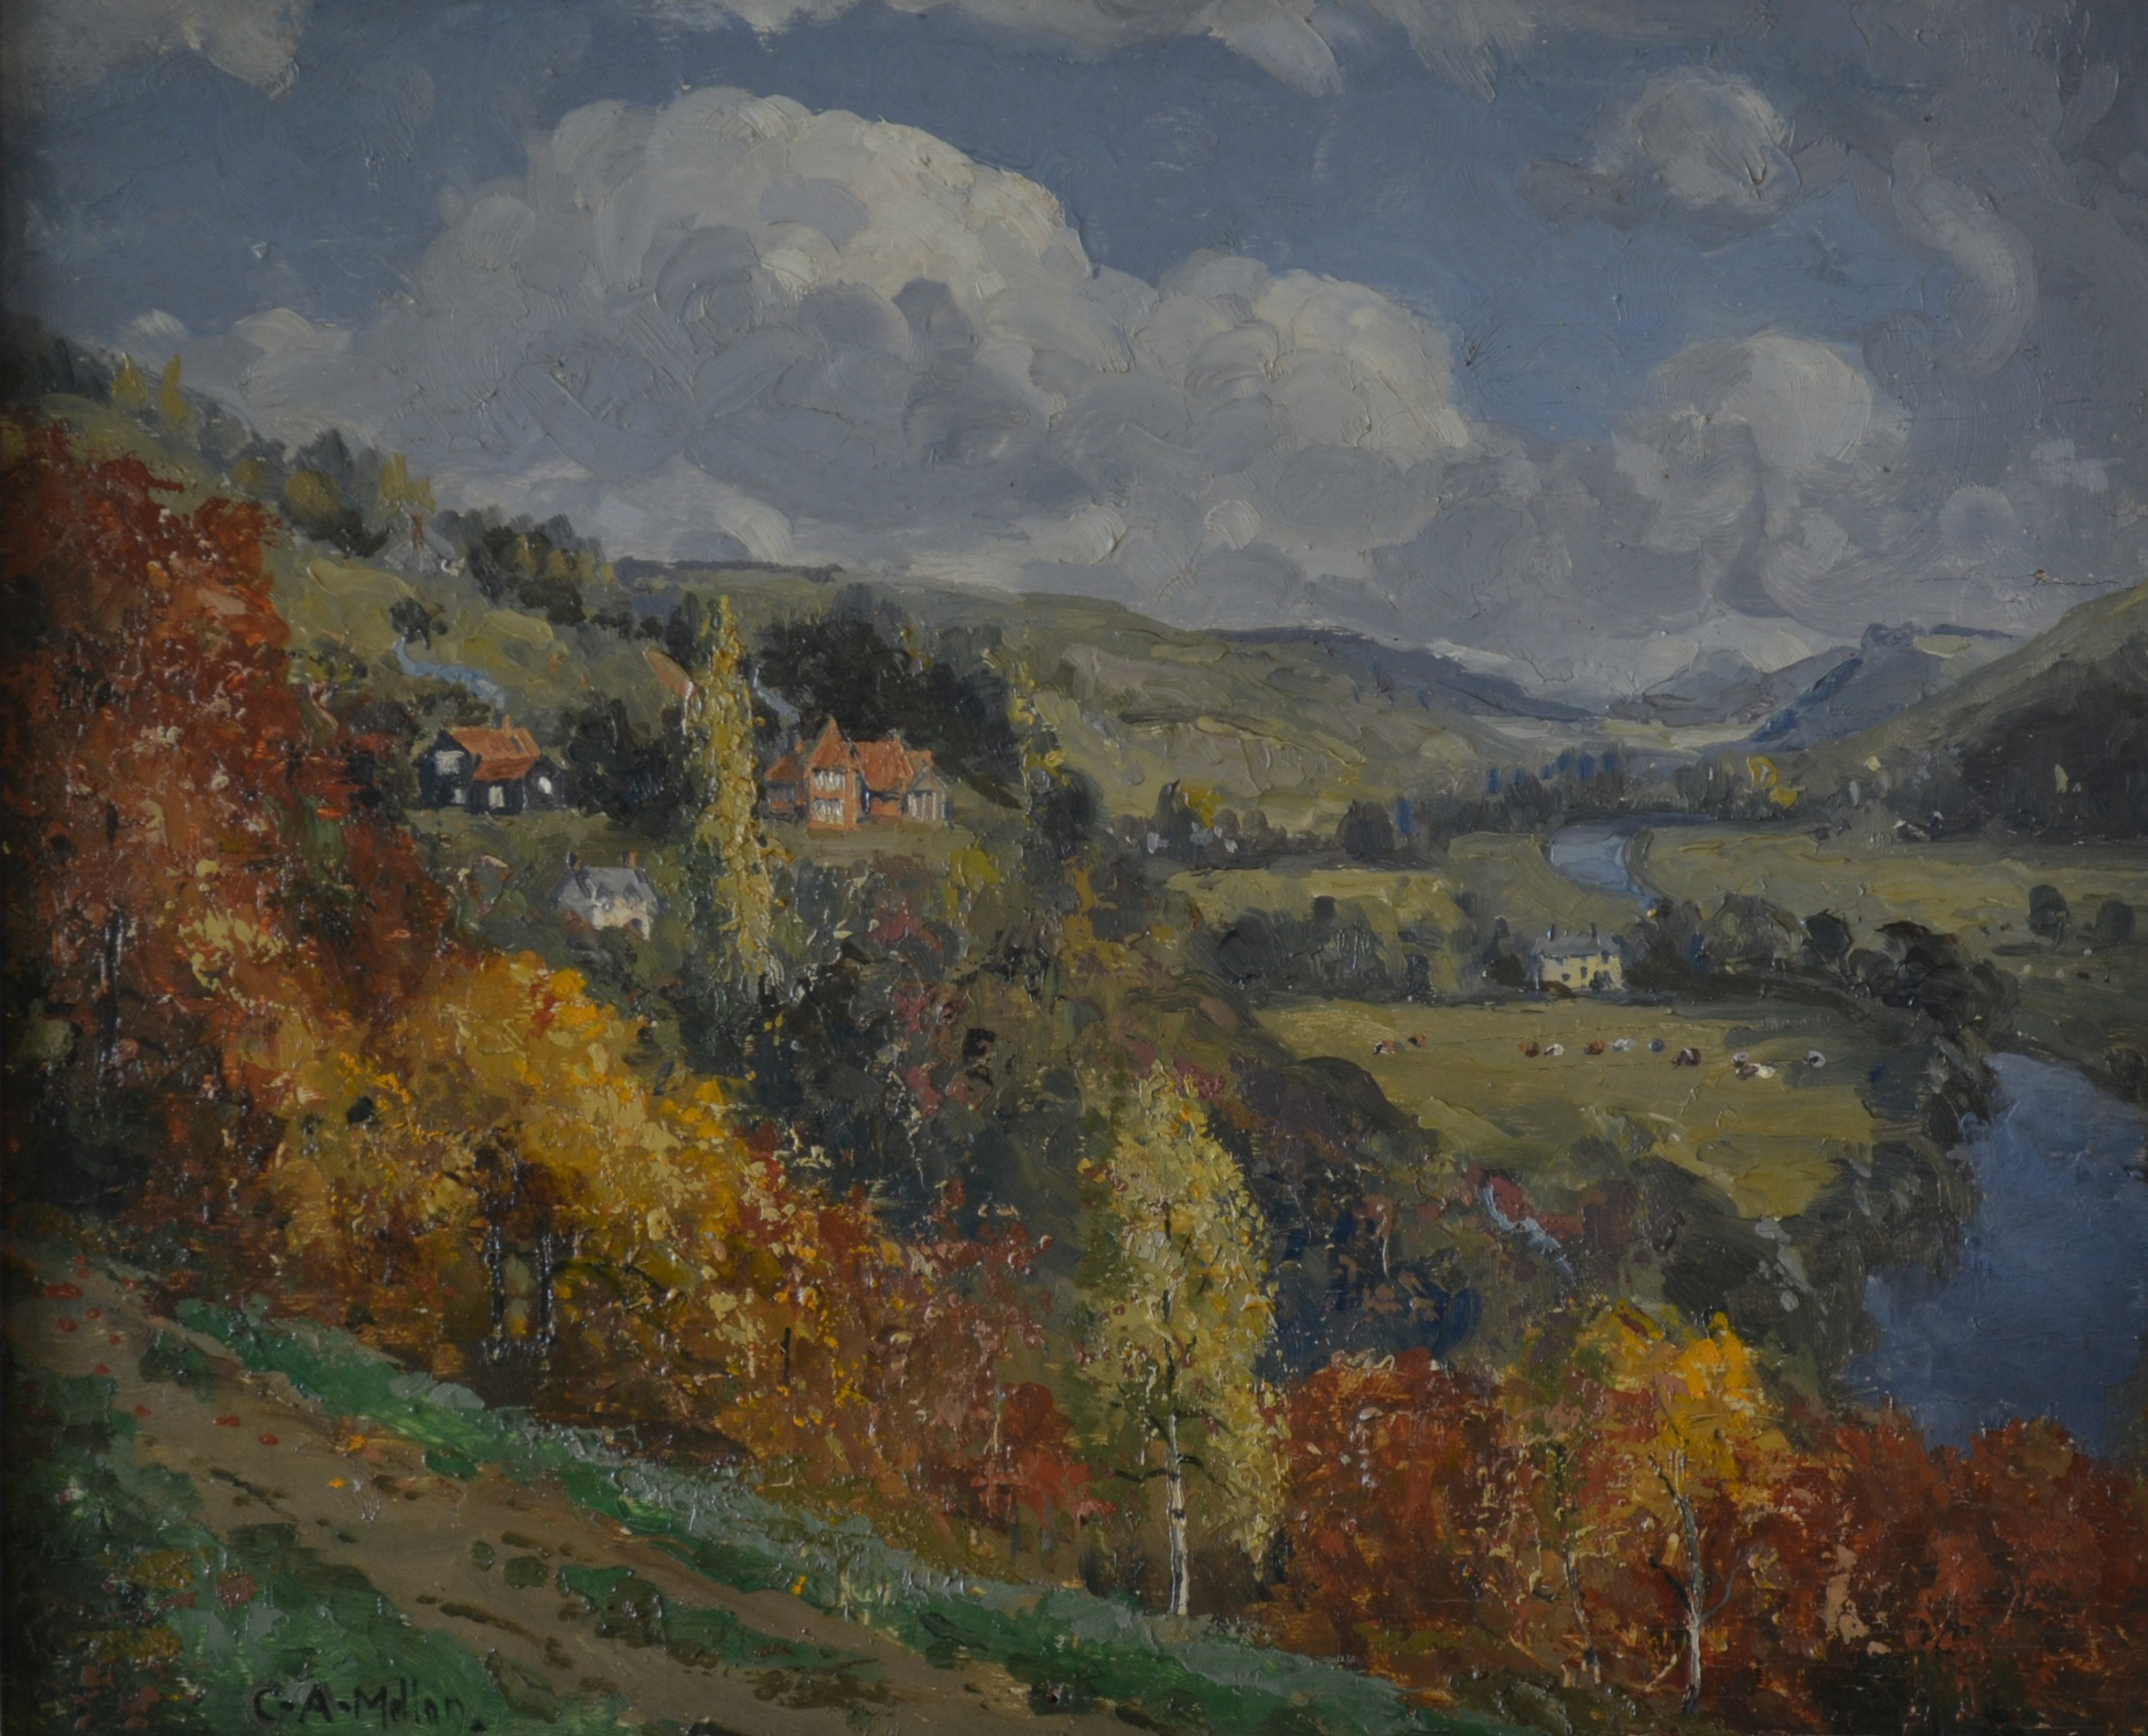 by the river wye herefordshire c1930 original oil on panel campbell archibald mellon roi rba 18761955